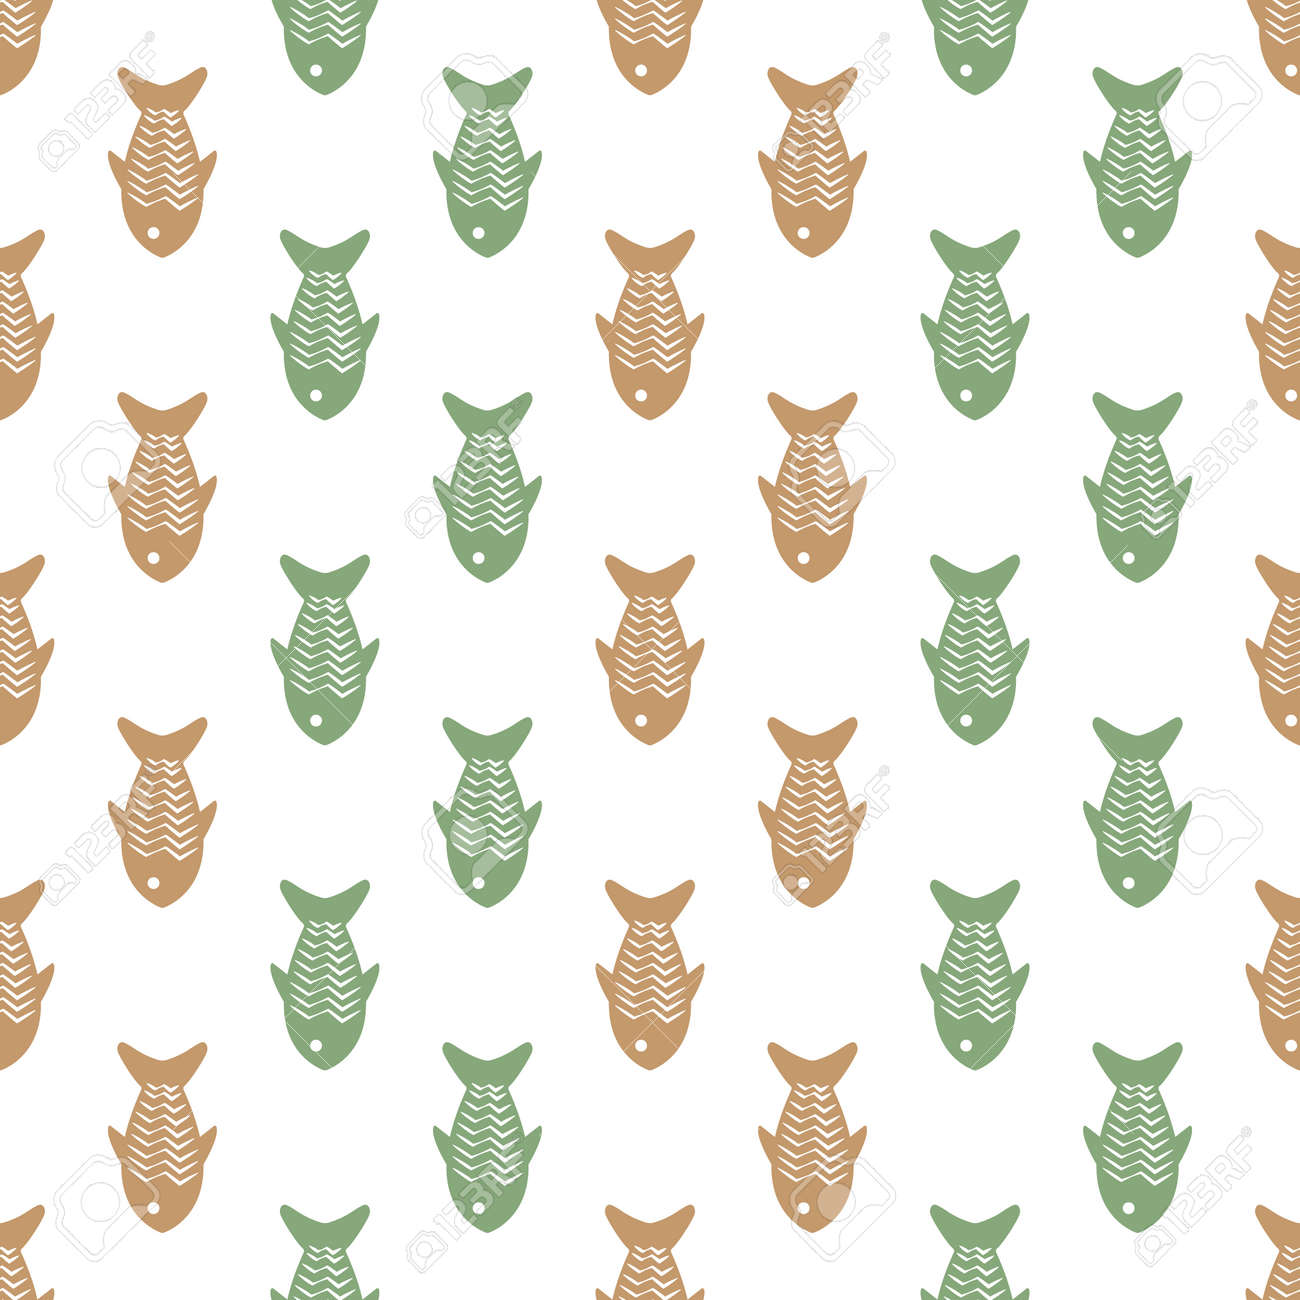 Seamless Animal Pattern Vector Background Colorful Art With Cute